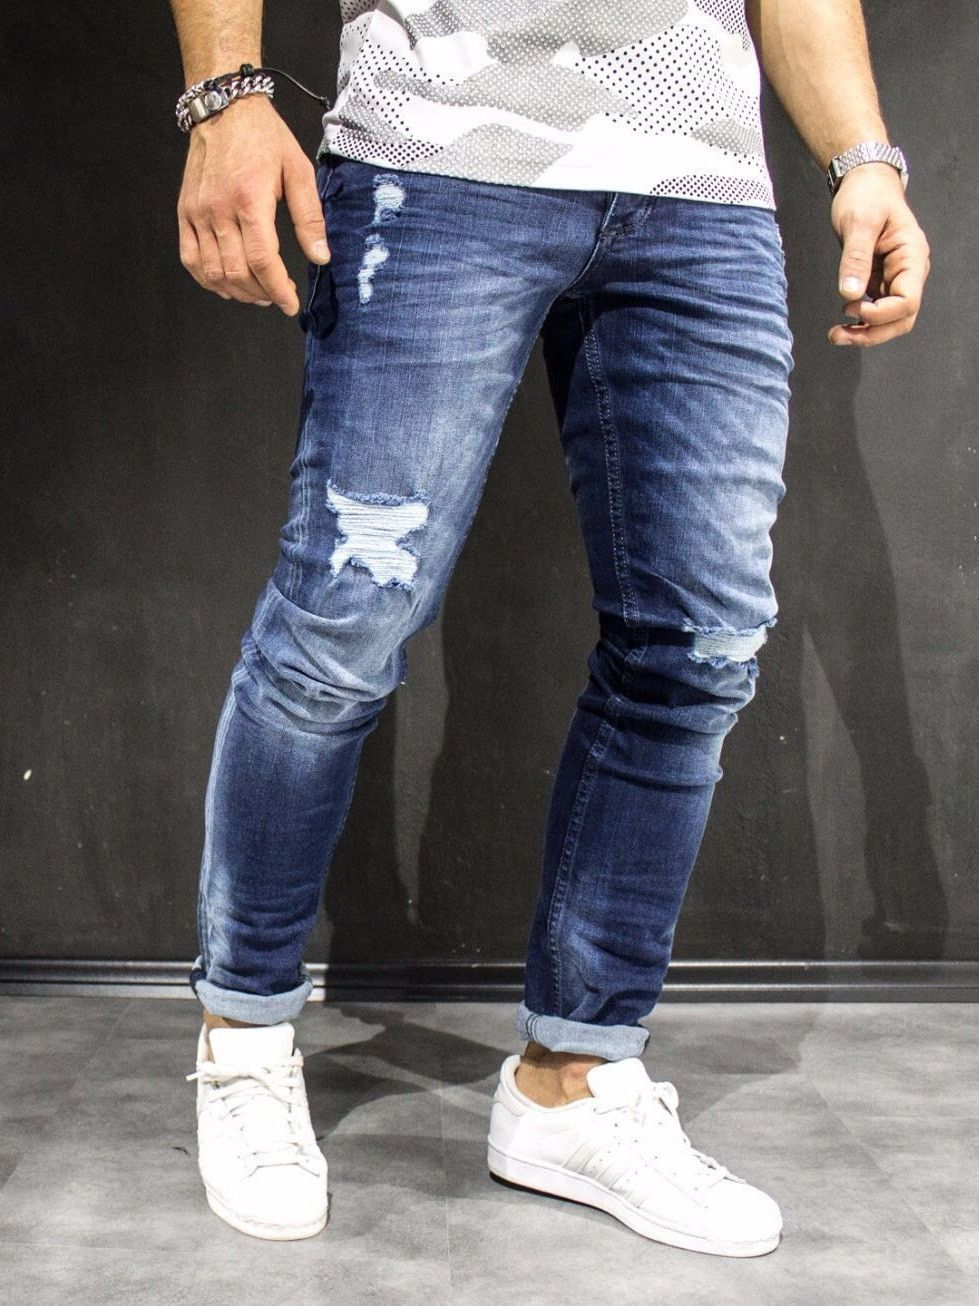 78289c247f Ripped jeans for men have been in existence for a while